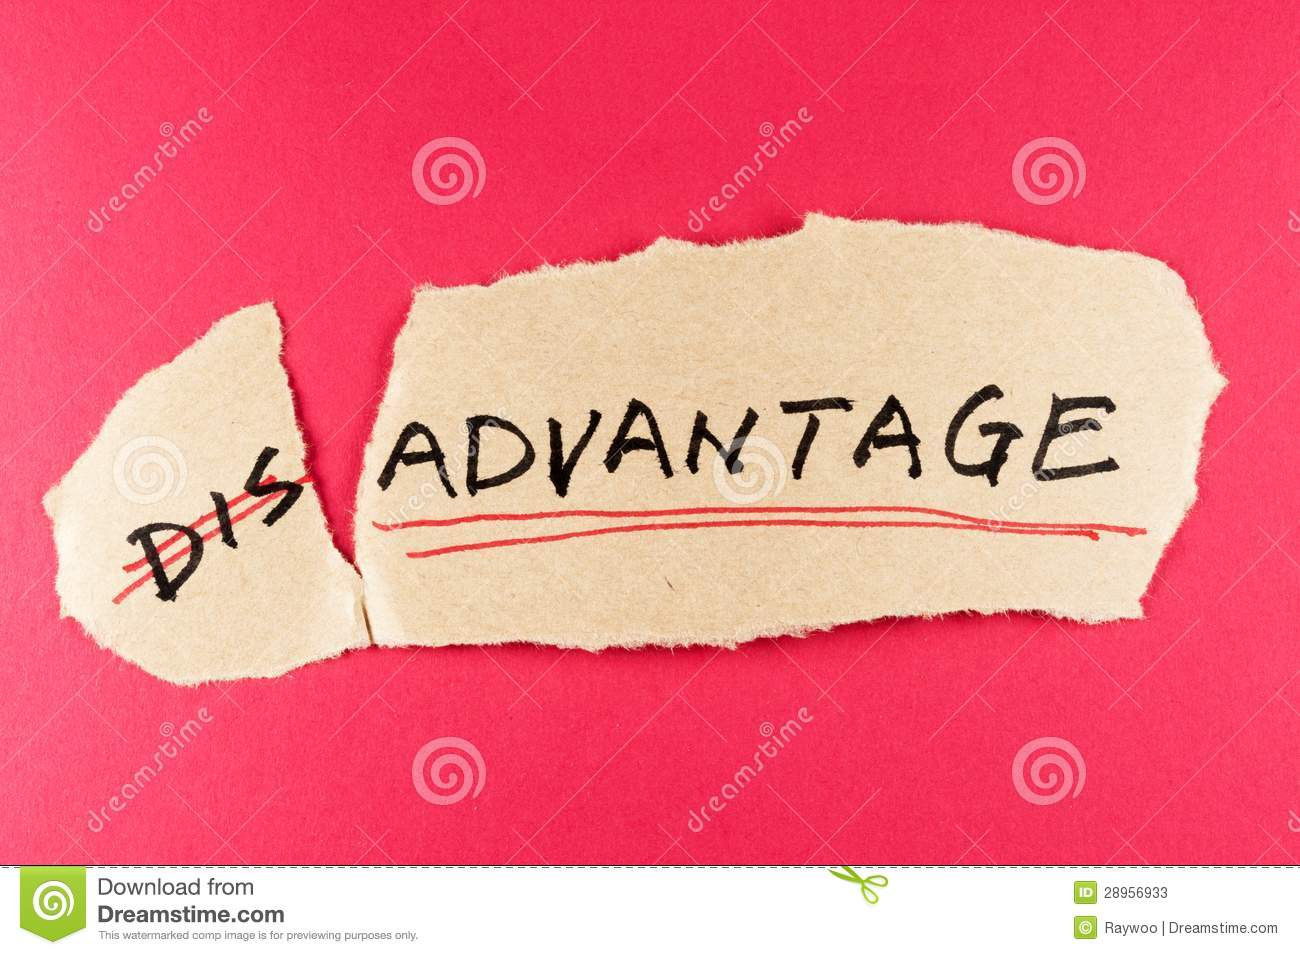 what are the advantage and disadvantage As others have answered the advantage is improvement in performance due to fast and random access to registers disadvantage being power consumption as registers consume high amount of power and therefore, there needs to be a tradeoff between the .